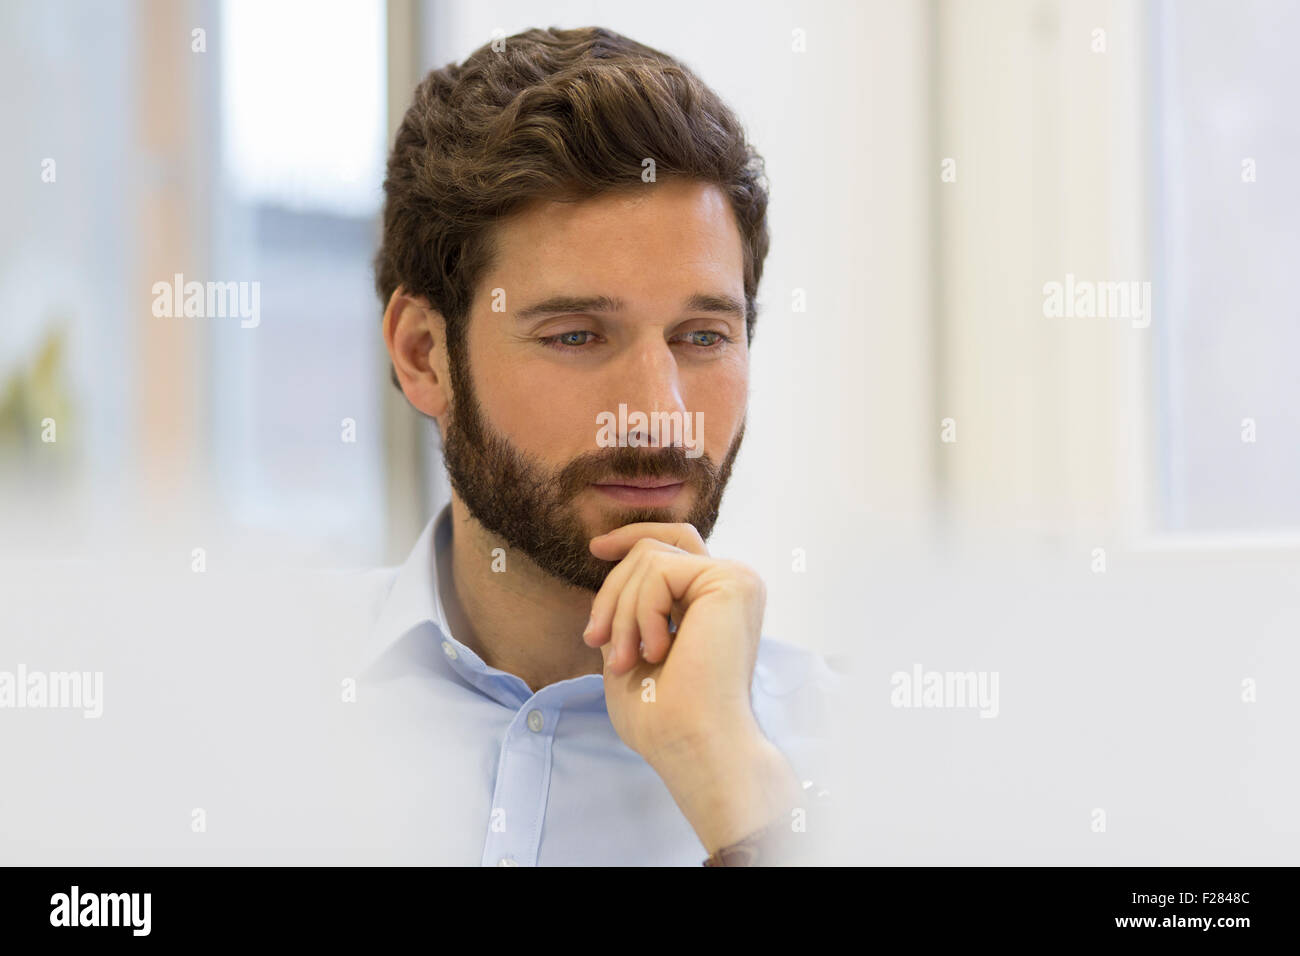 Pensive businessman in modern office - Stock Image